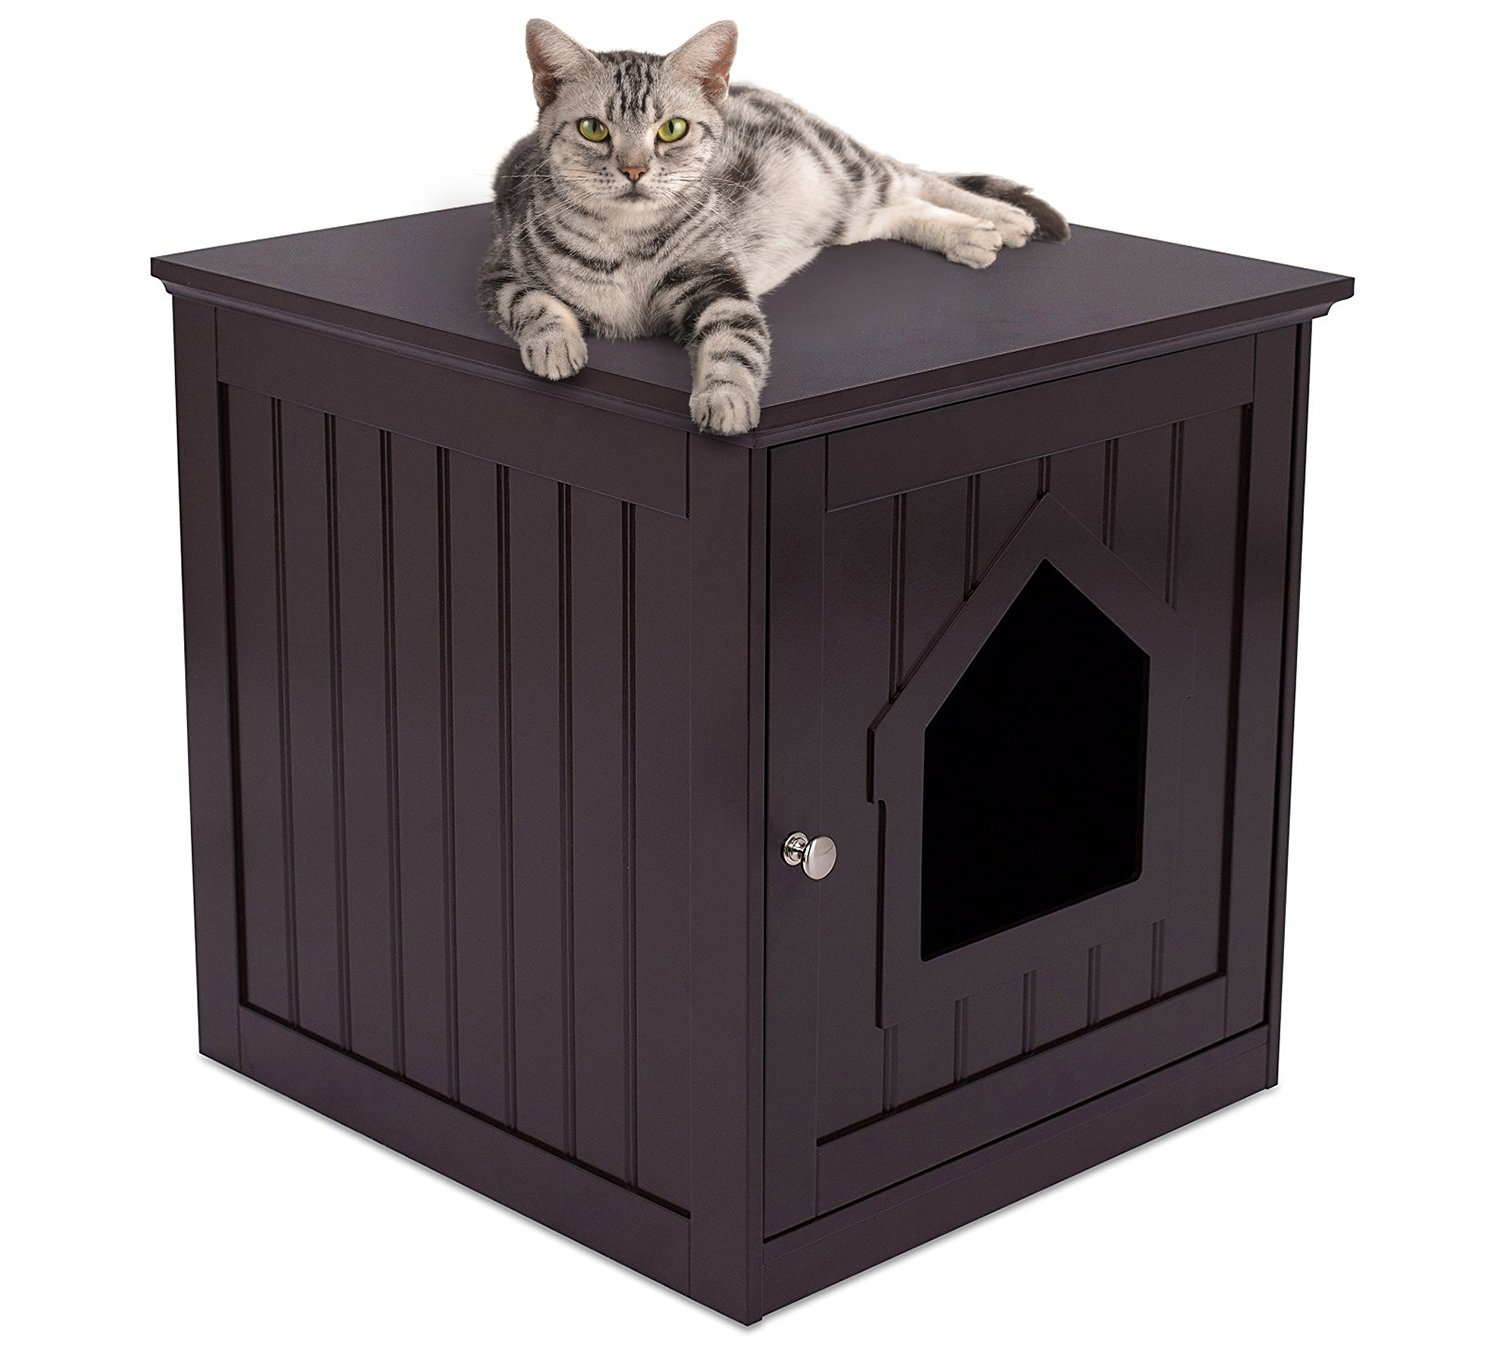 Internet's Best Decorative Cat House & Side Table - Cat Home Nightstand - Indoor Pet Crate - Litter Box Enclosure (Espresso) by Internet's Best